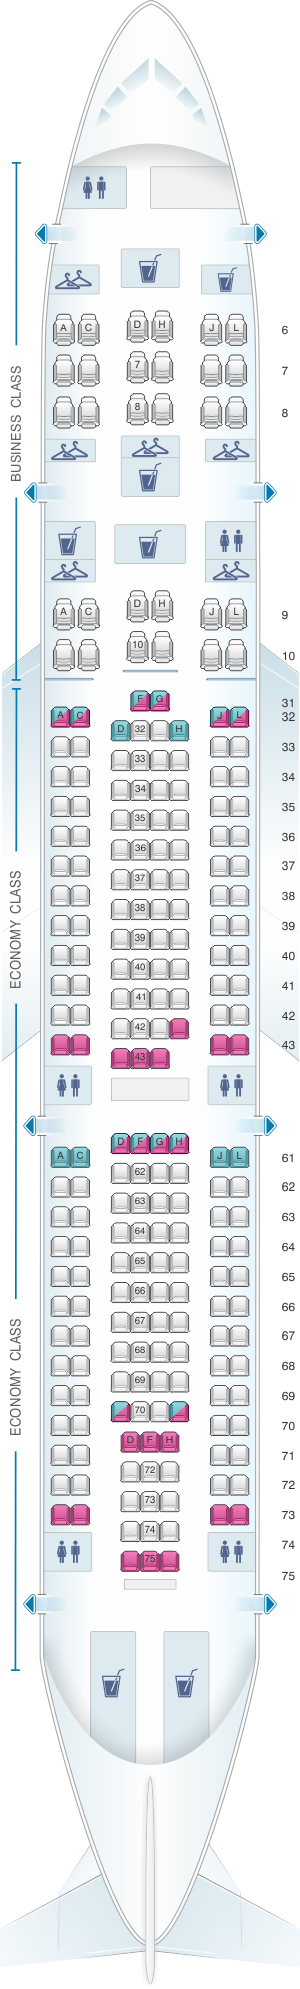 Seat map for China Eastern Airlines Airbus A330 200 234PAX